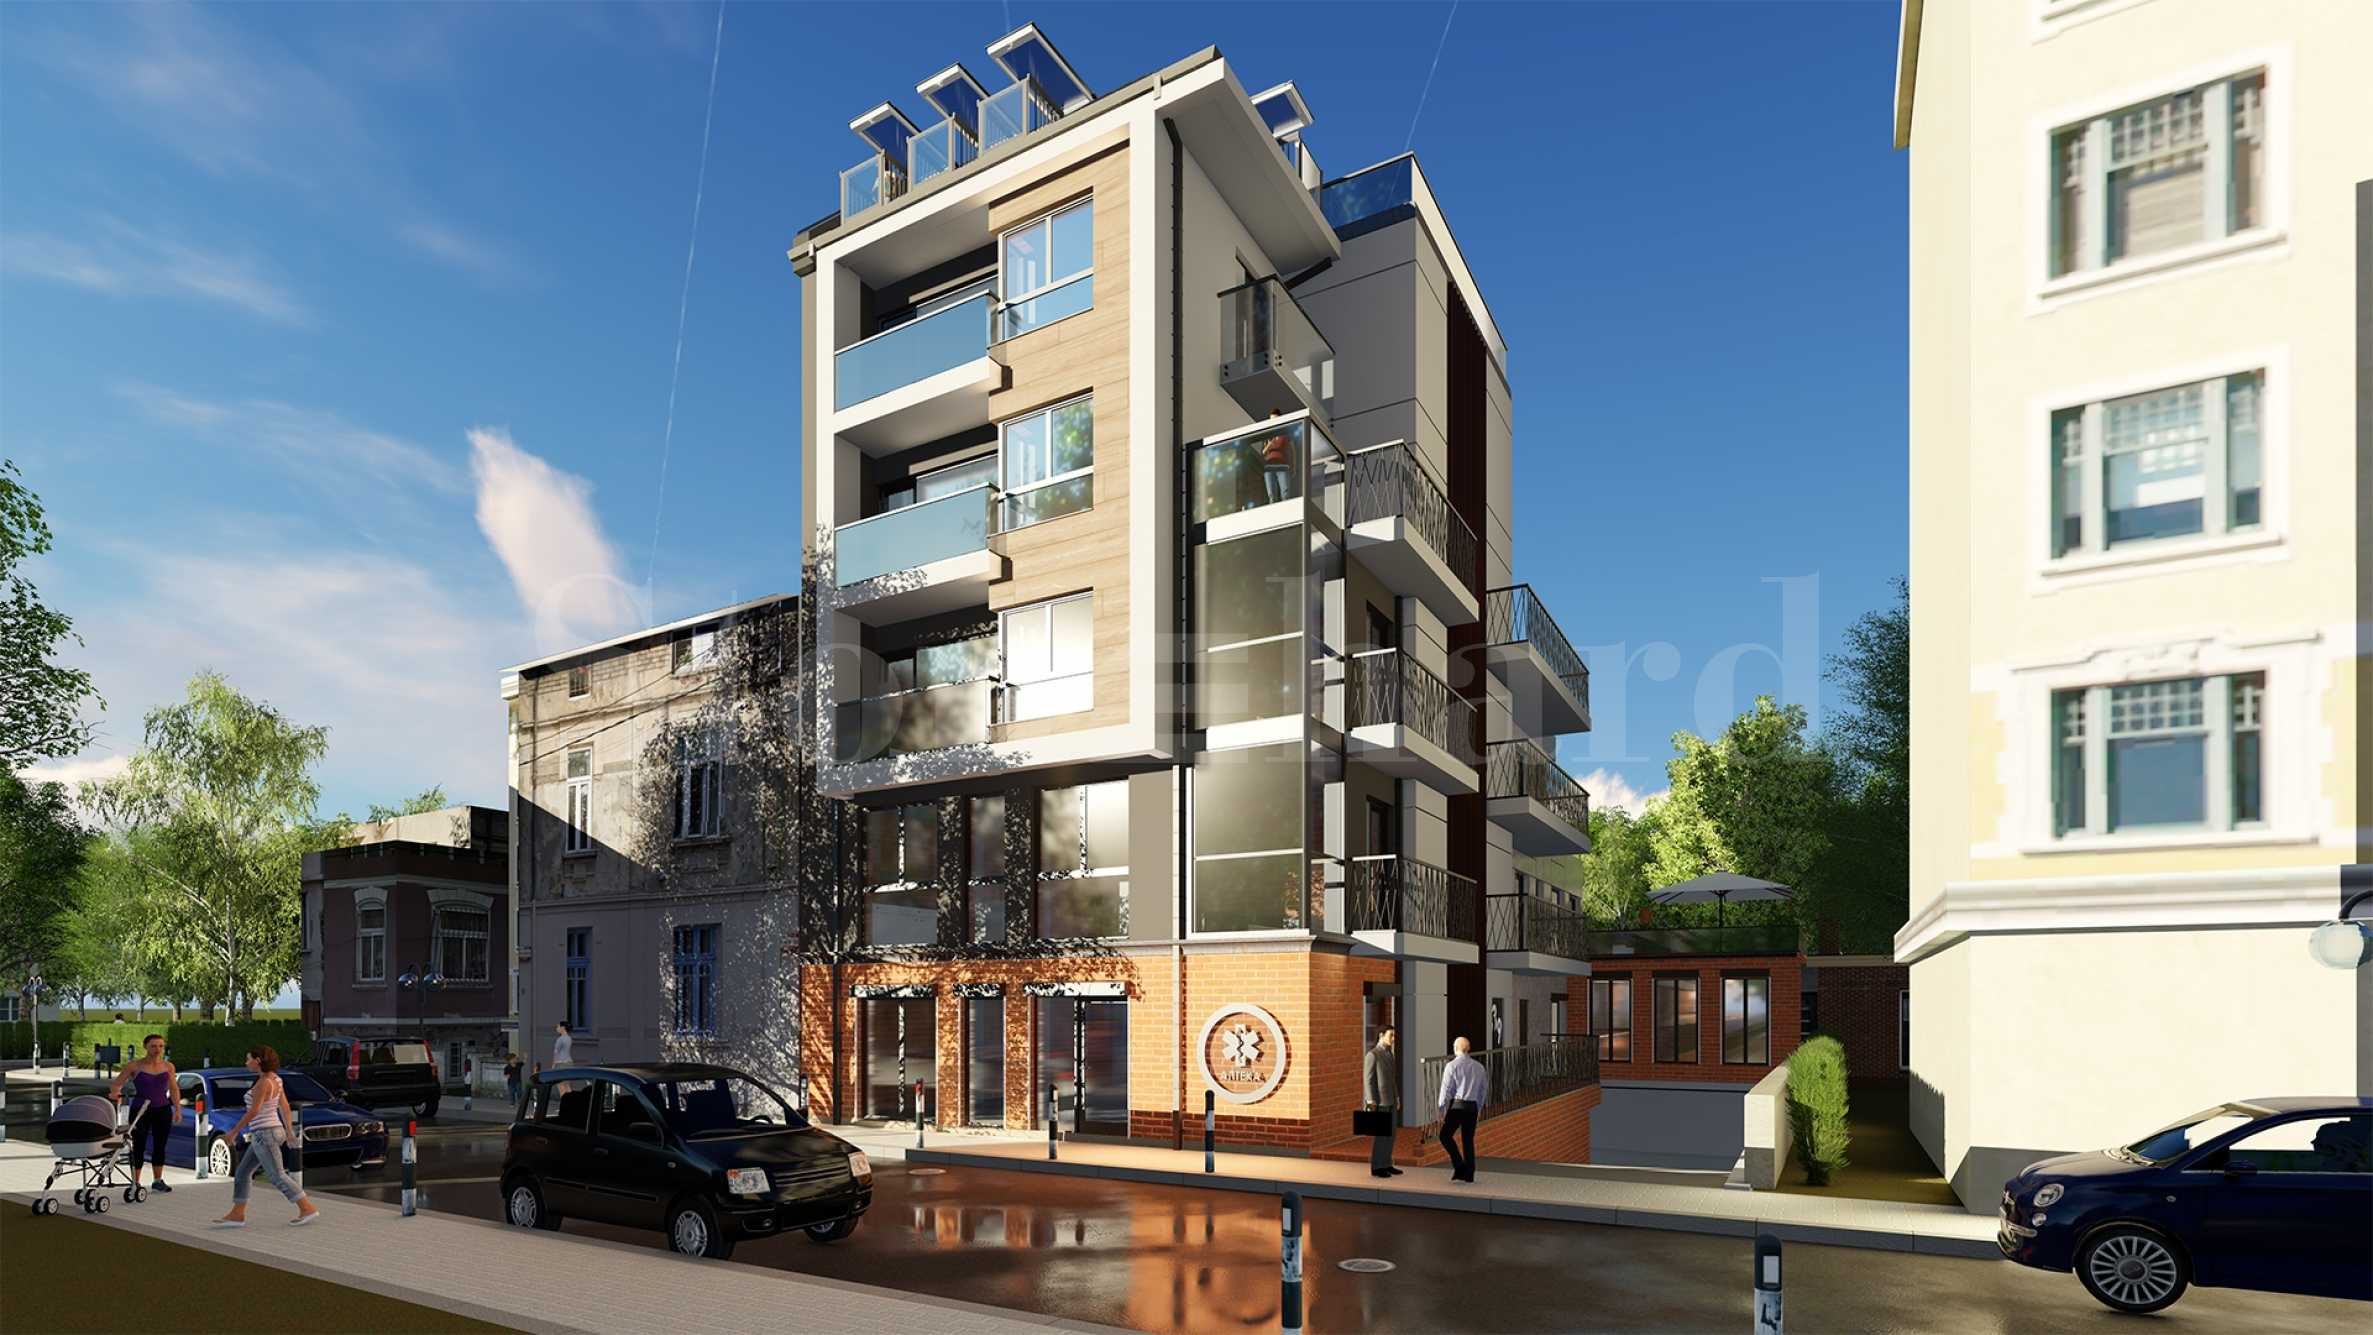 Apartments for sale in a boutique building in an attractive location1 - Stonehard